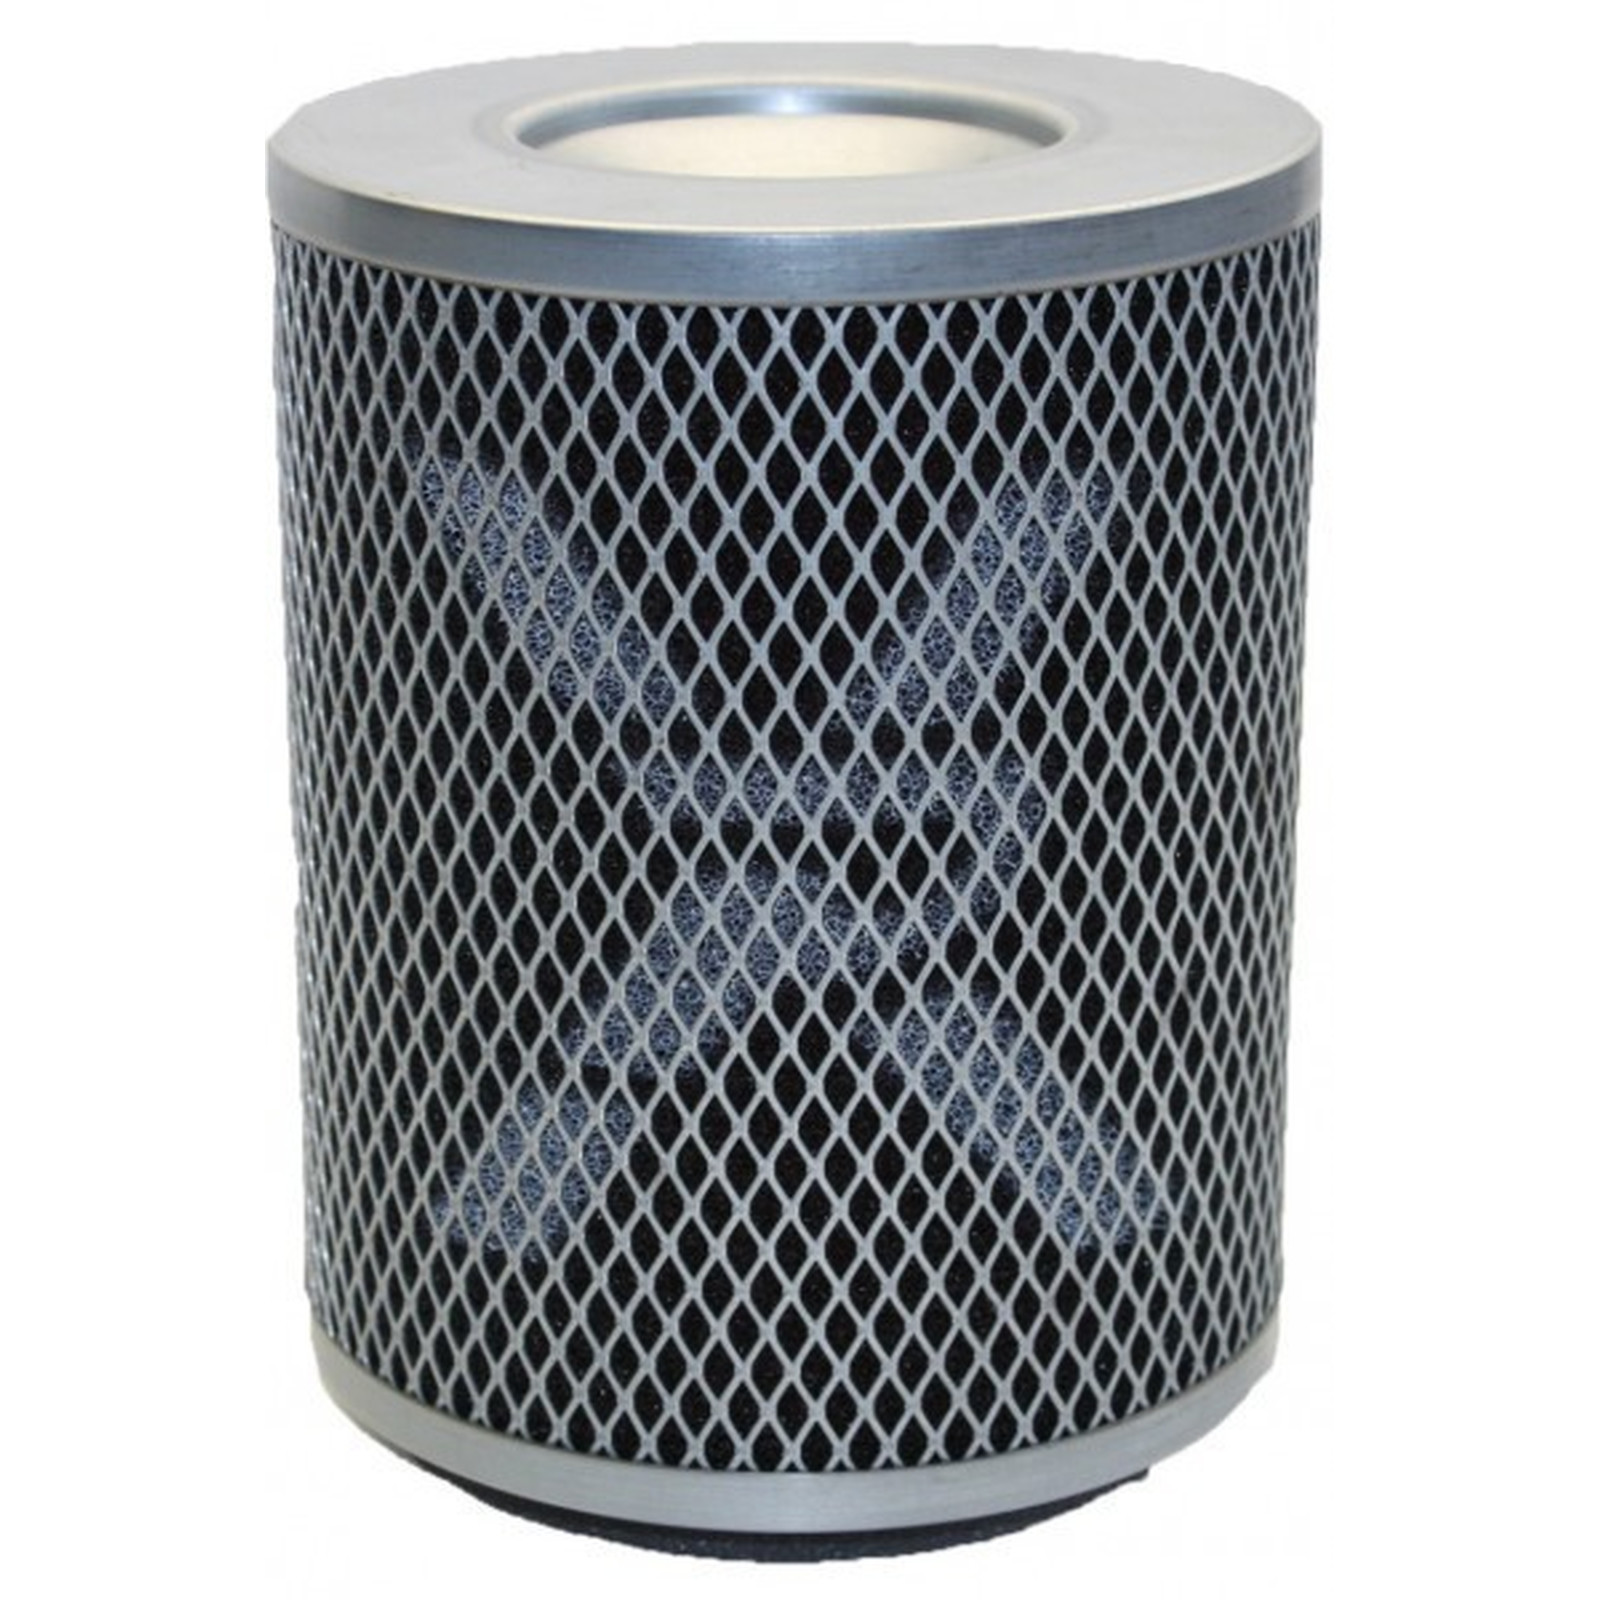 Pipercross Air Filter Element PX1358 Performance Replacement Panel Air Filter